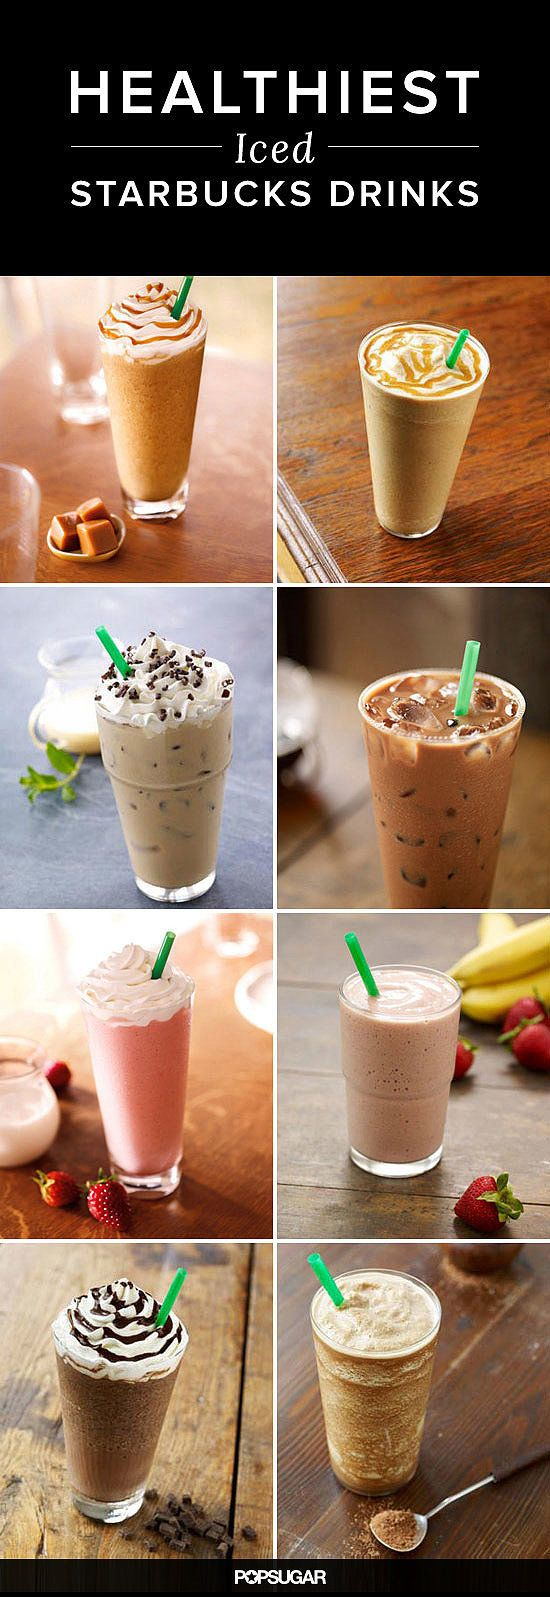 Best diet options at starbucks